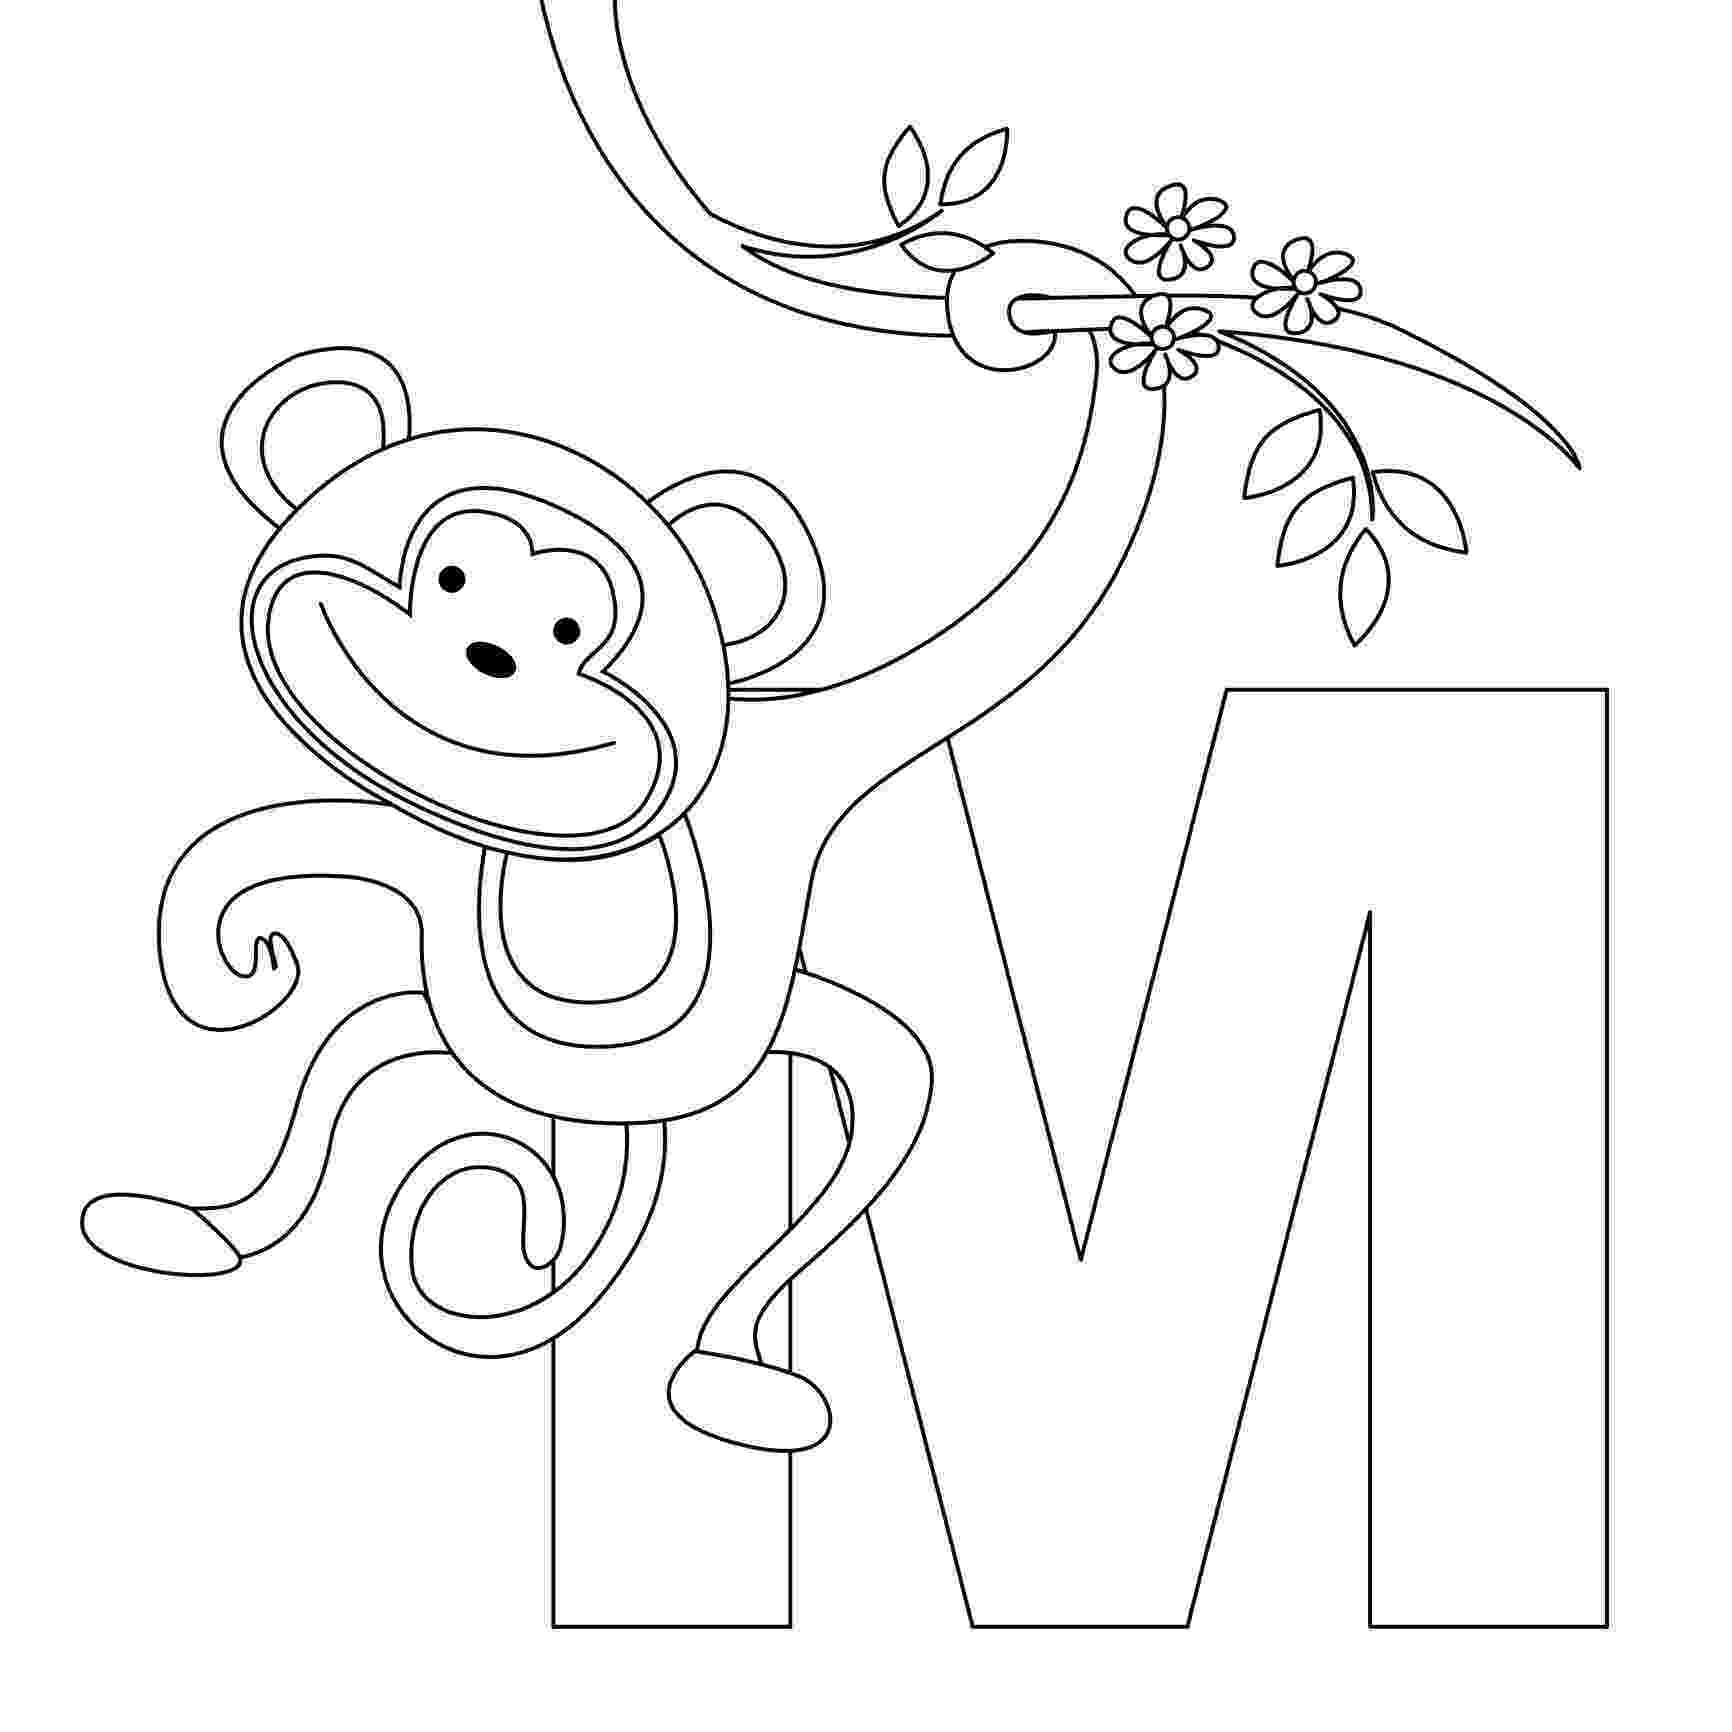 monkeys coloring pages free printable monkey coloring pages for kids cool2bkids coloring pages monkeys